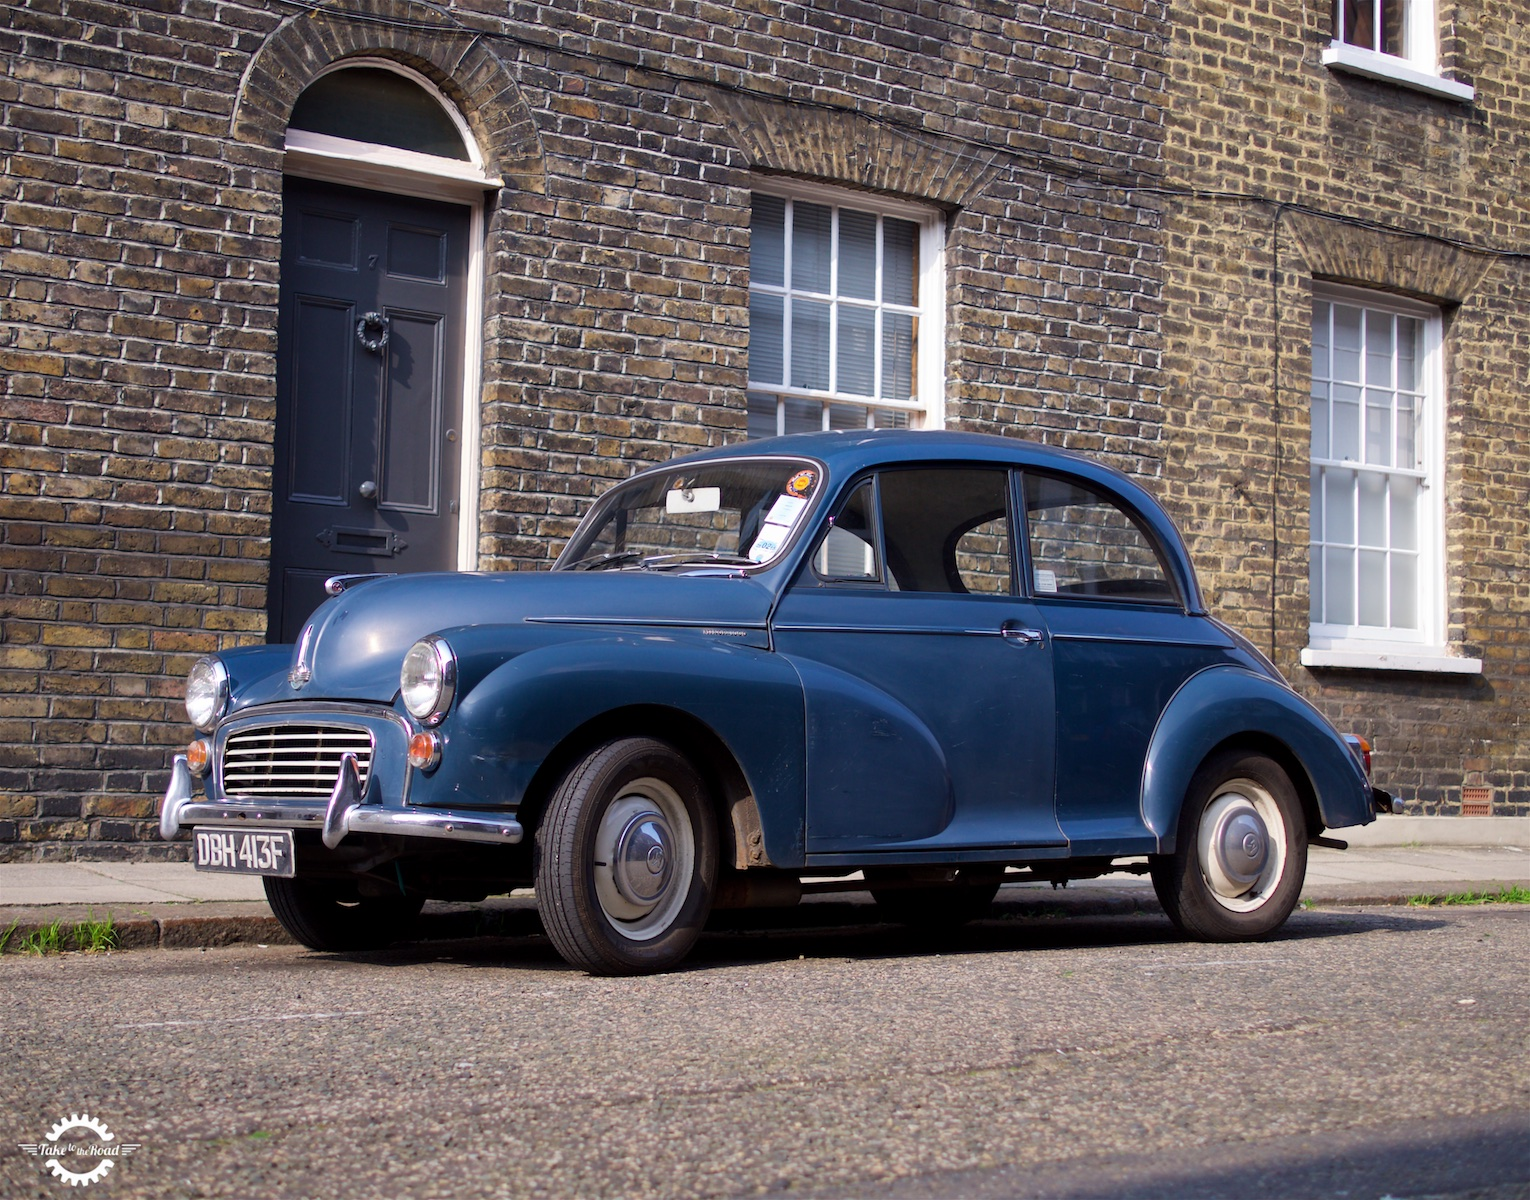 Take to the Road Feature Have you got what it takes to restore a classic car?